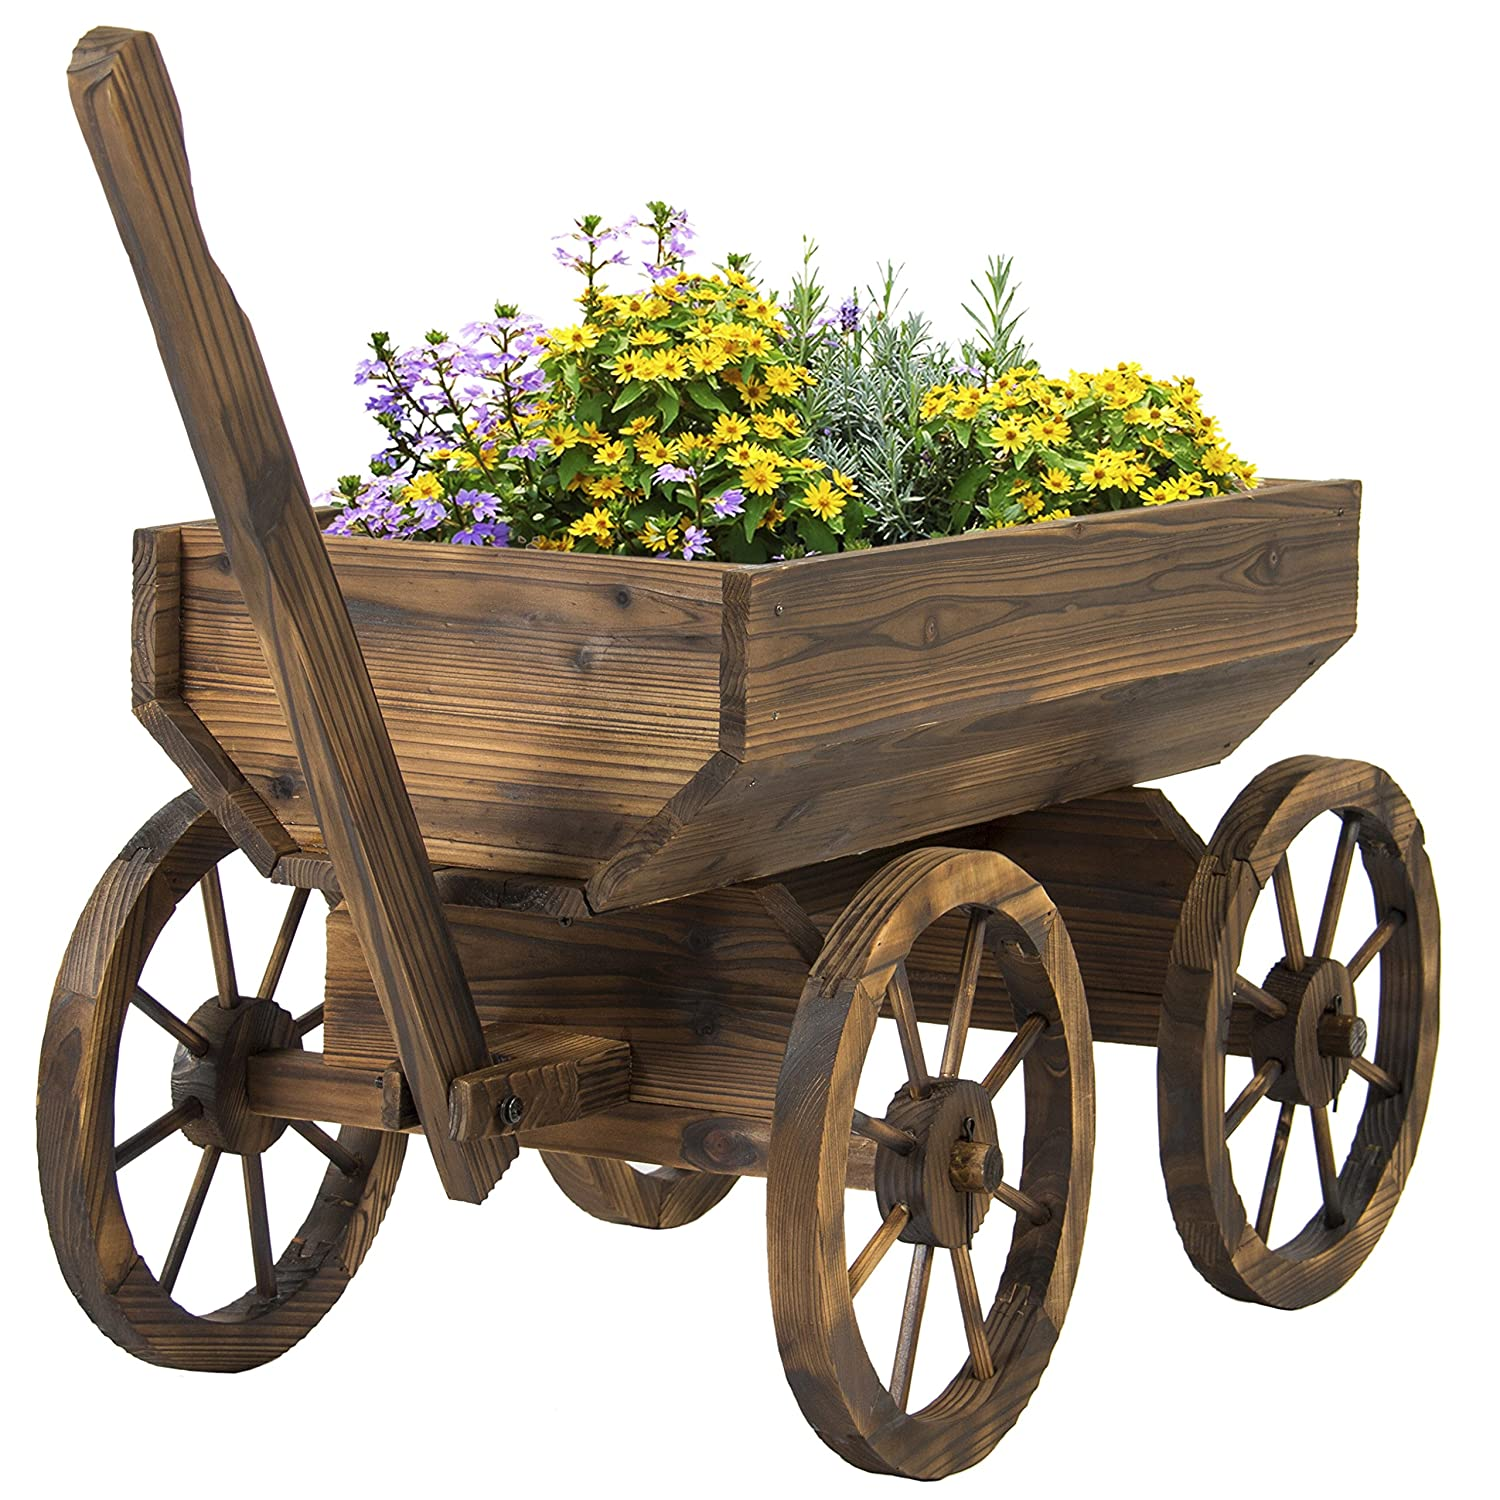 Patio Garden Wooden Wagon Backyard Grow Flowers Planter w/ Wheels